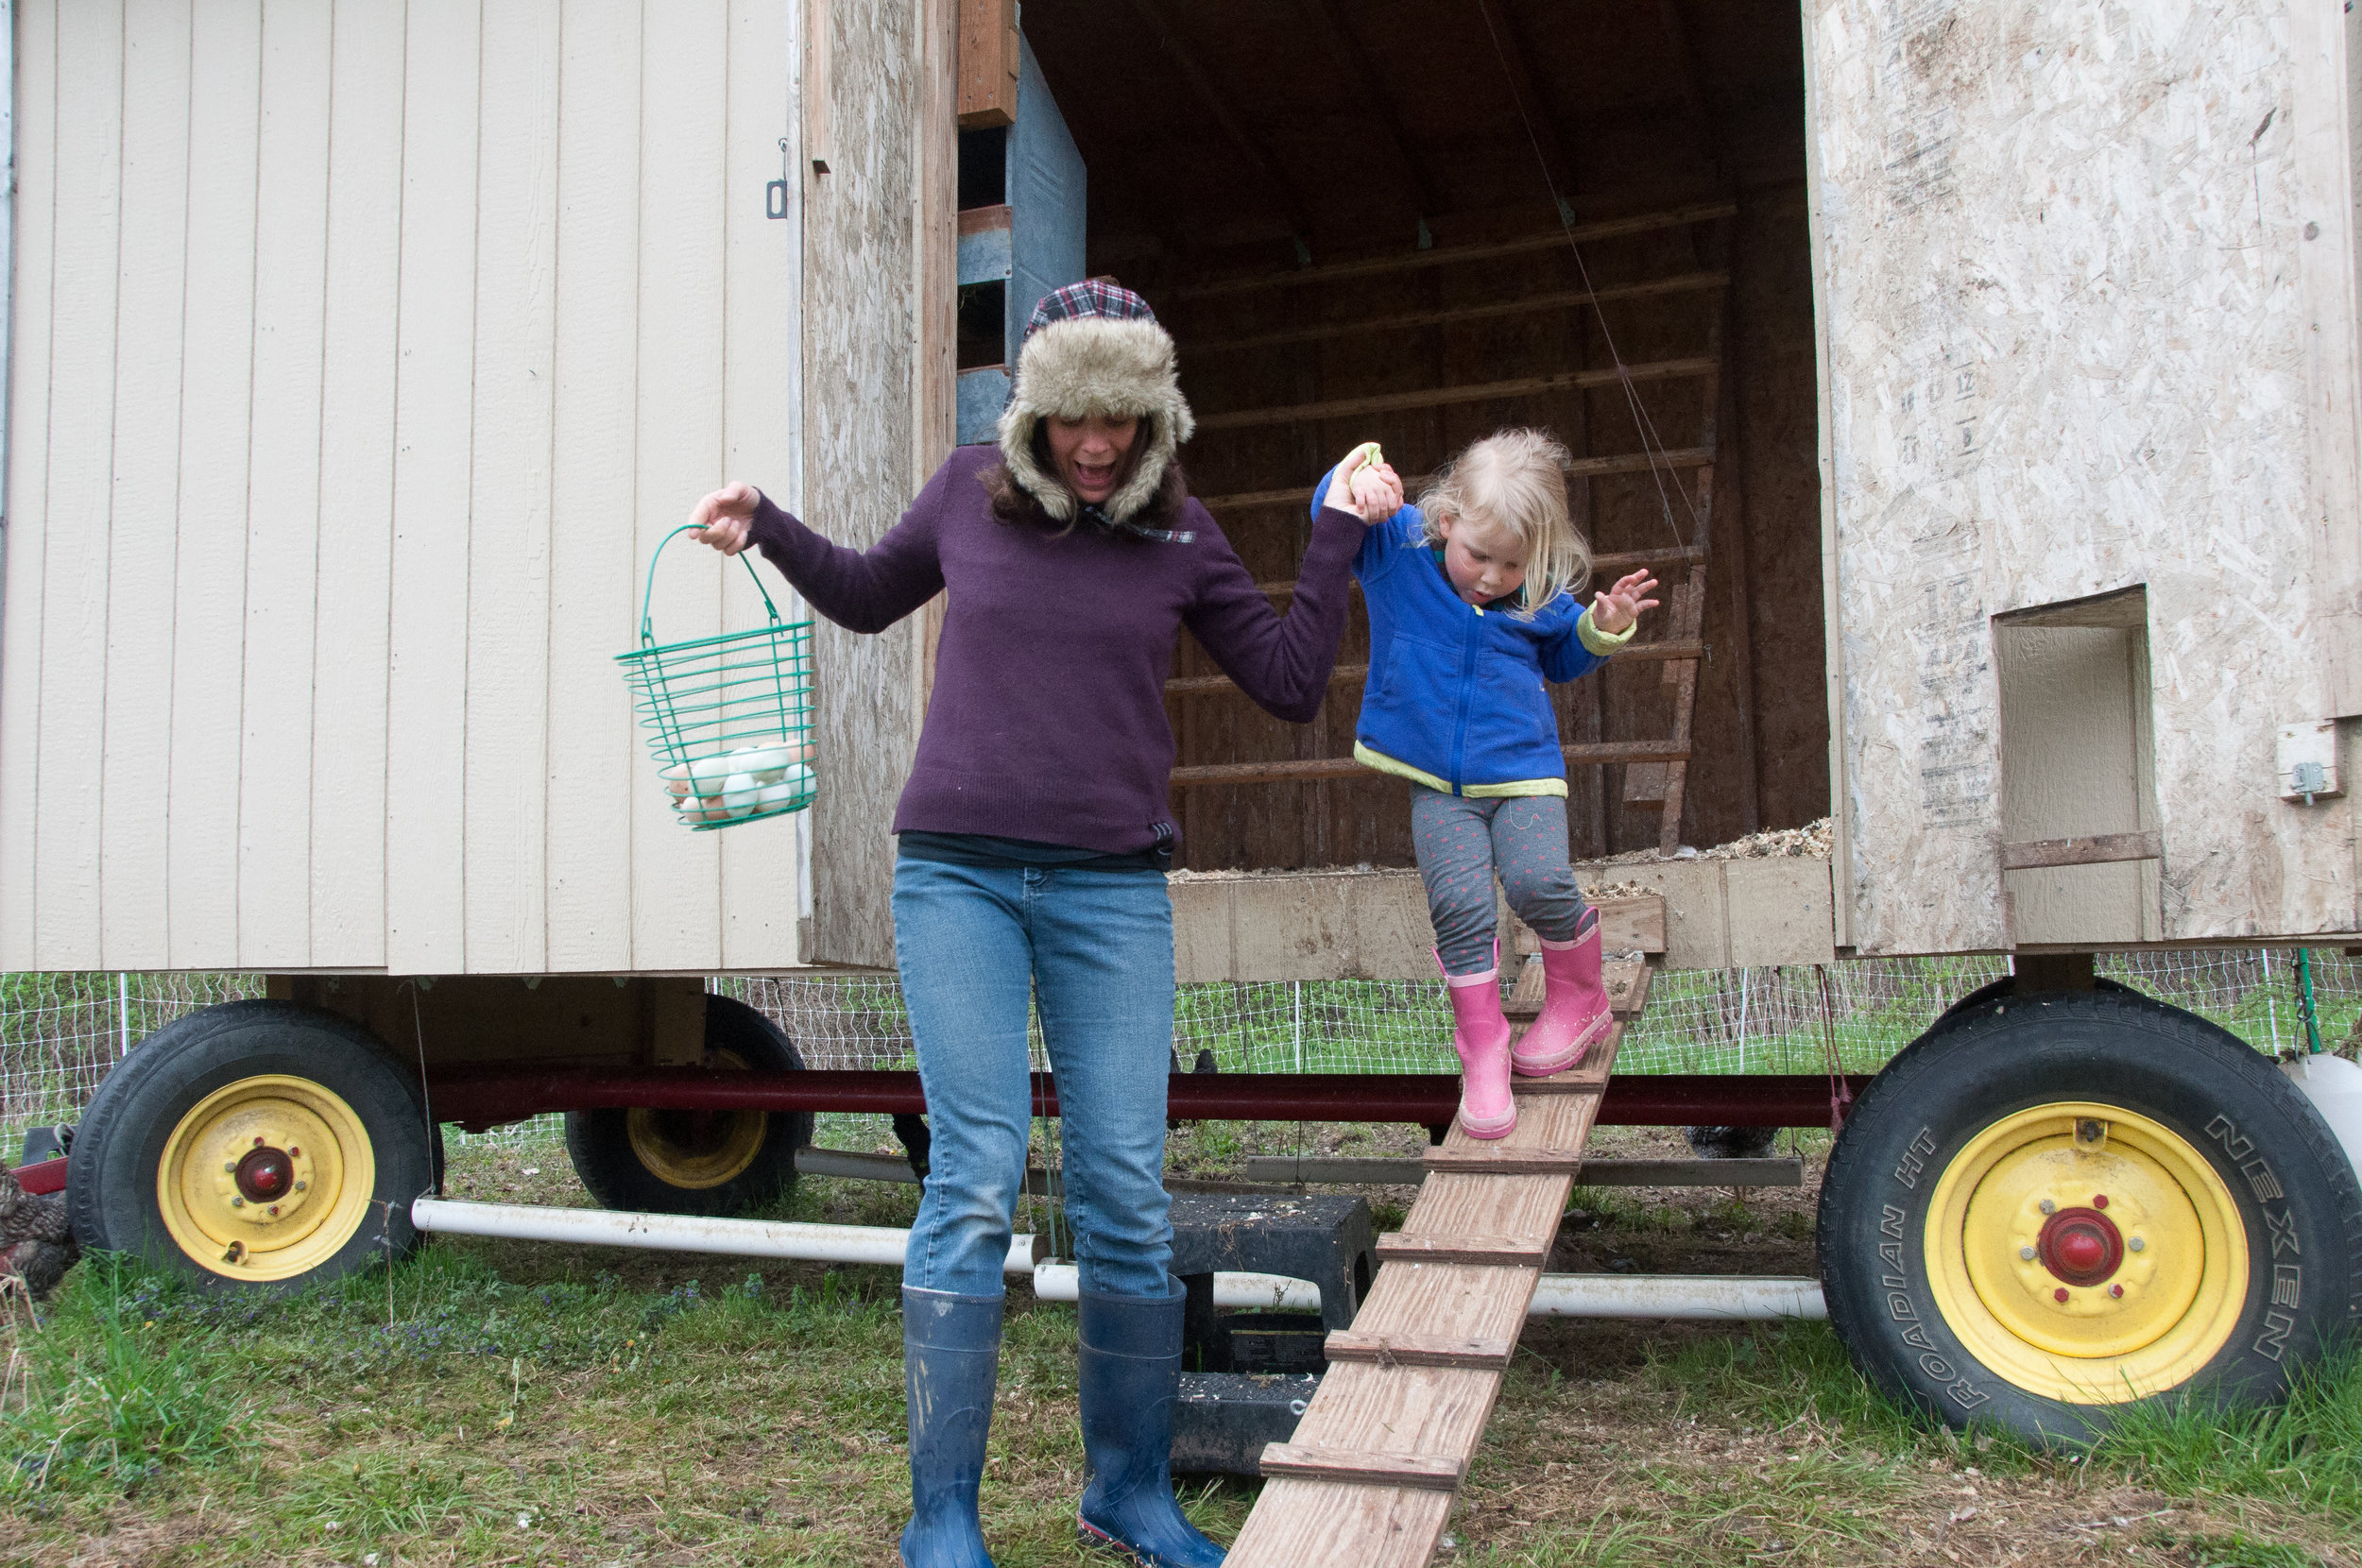 Everyone helps with chores.